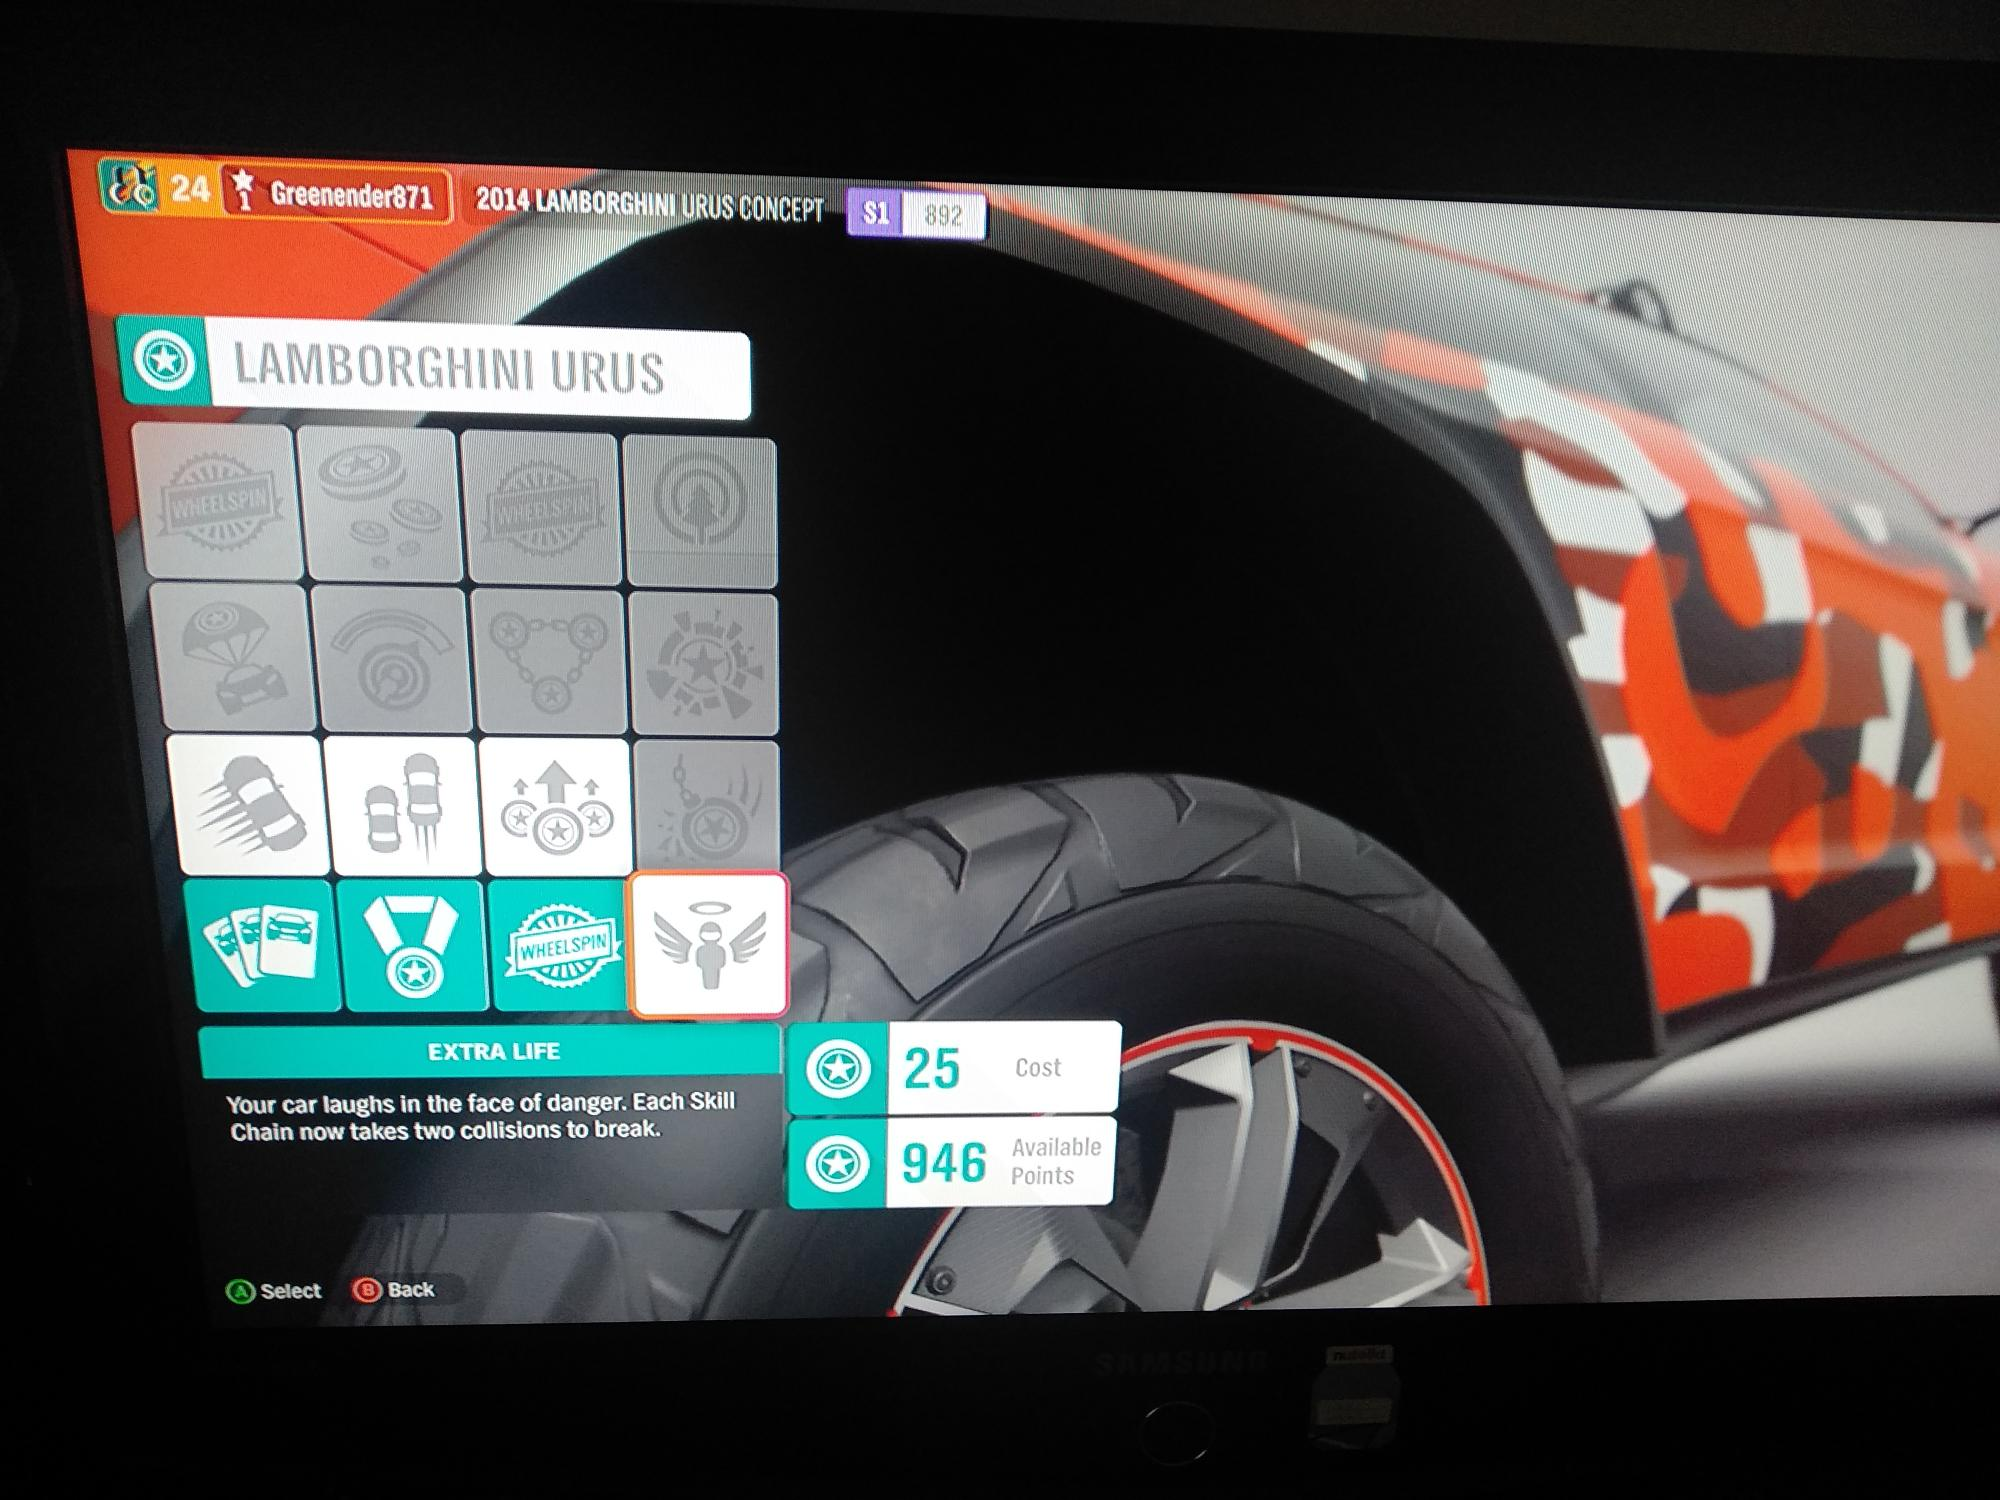 So today I wanted to skill up my Urus until I noticed THIS CAN SOMEONE EXPLAIN WHERE THESE CAME FROM